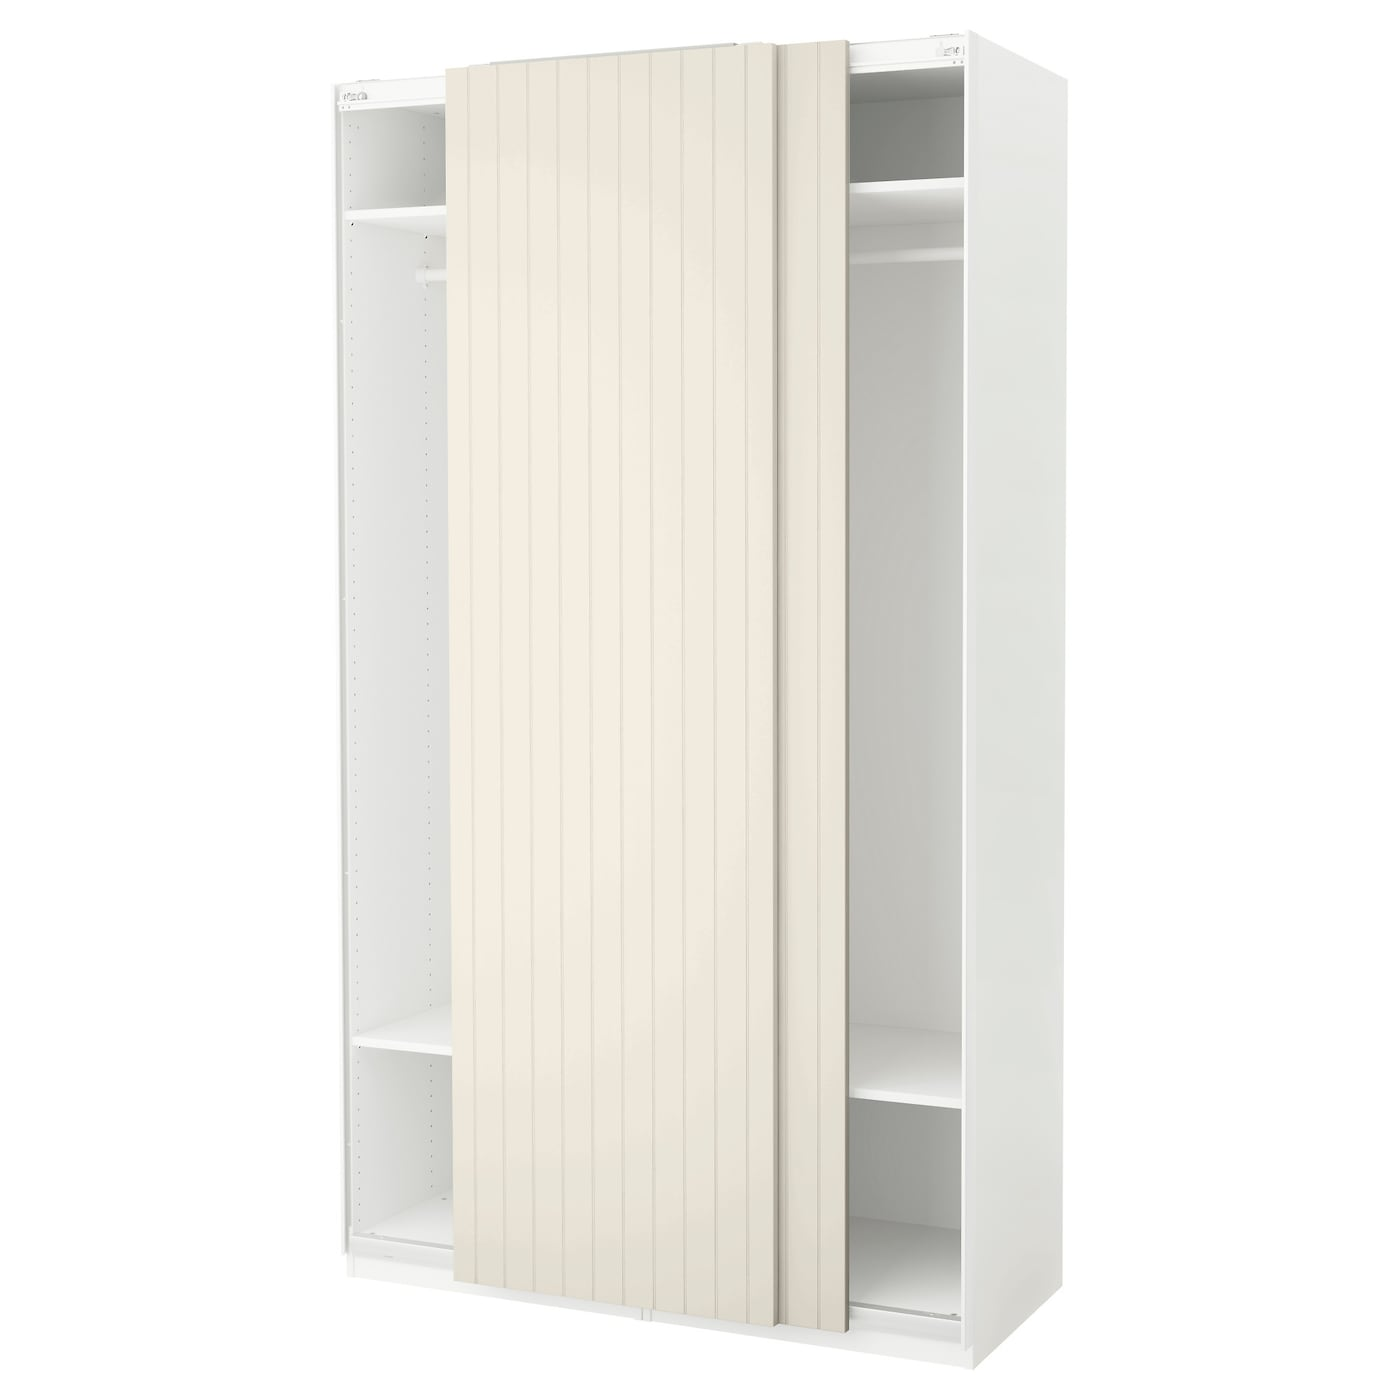 pax armoire penderie blanc bergsfjord blanc 150x66x236 cm ikea. Black Bedroom Furniture Sets. Home Design Ideas